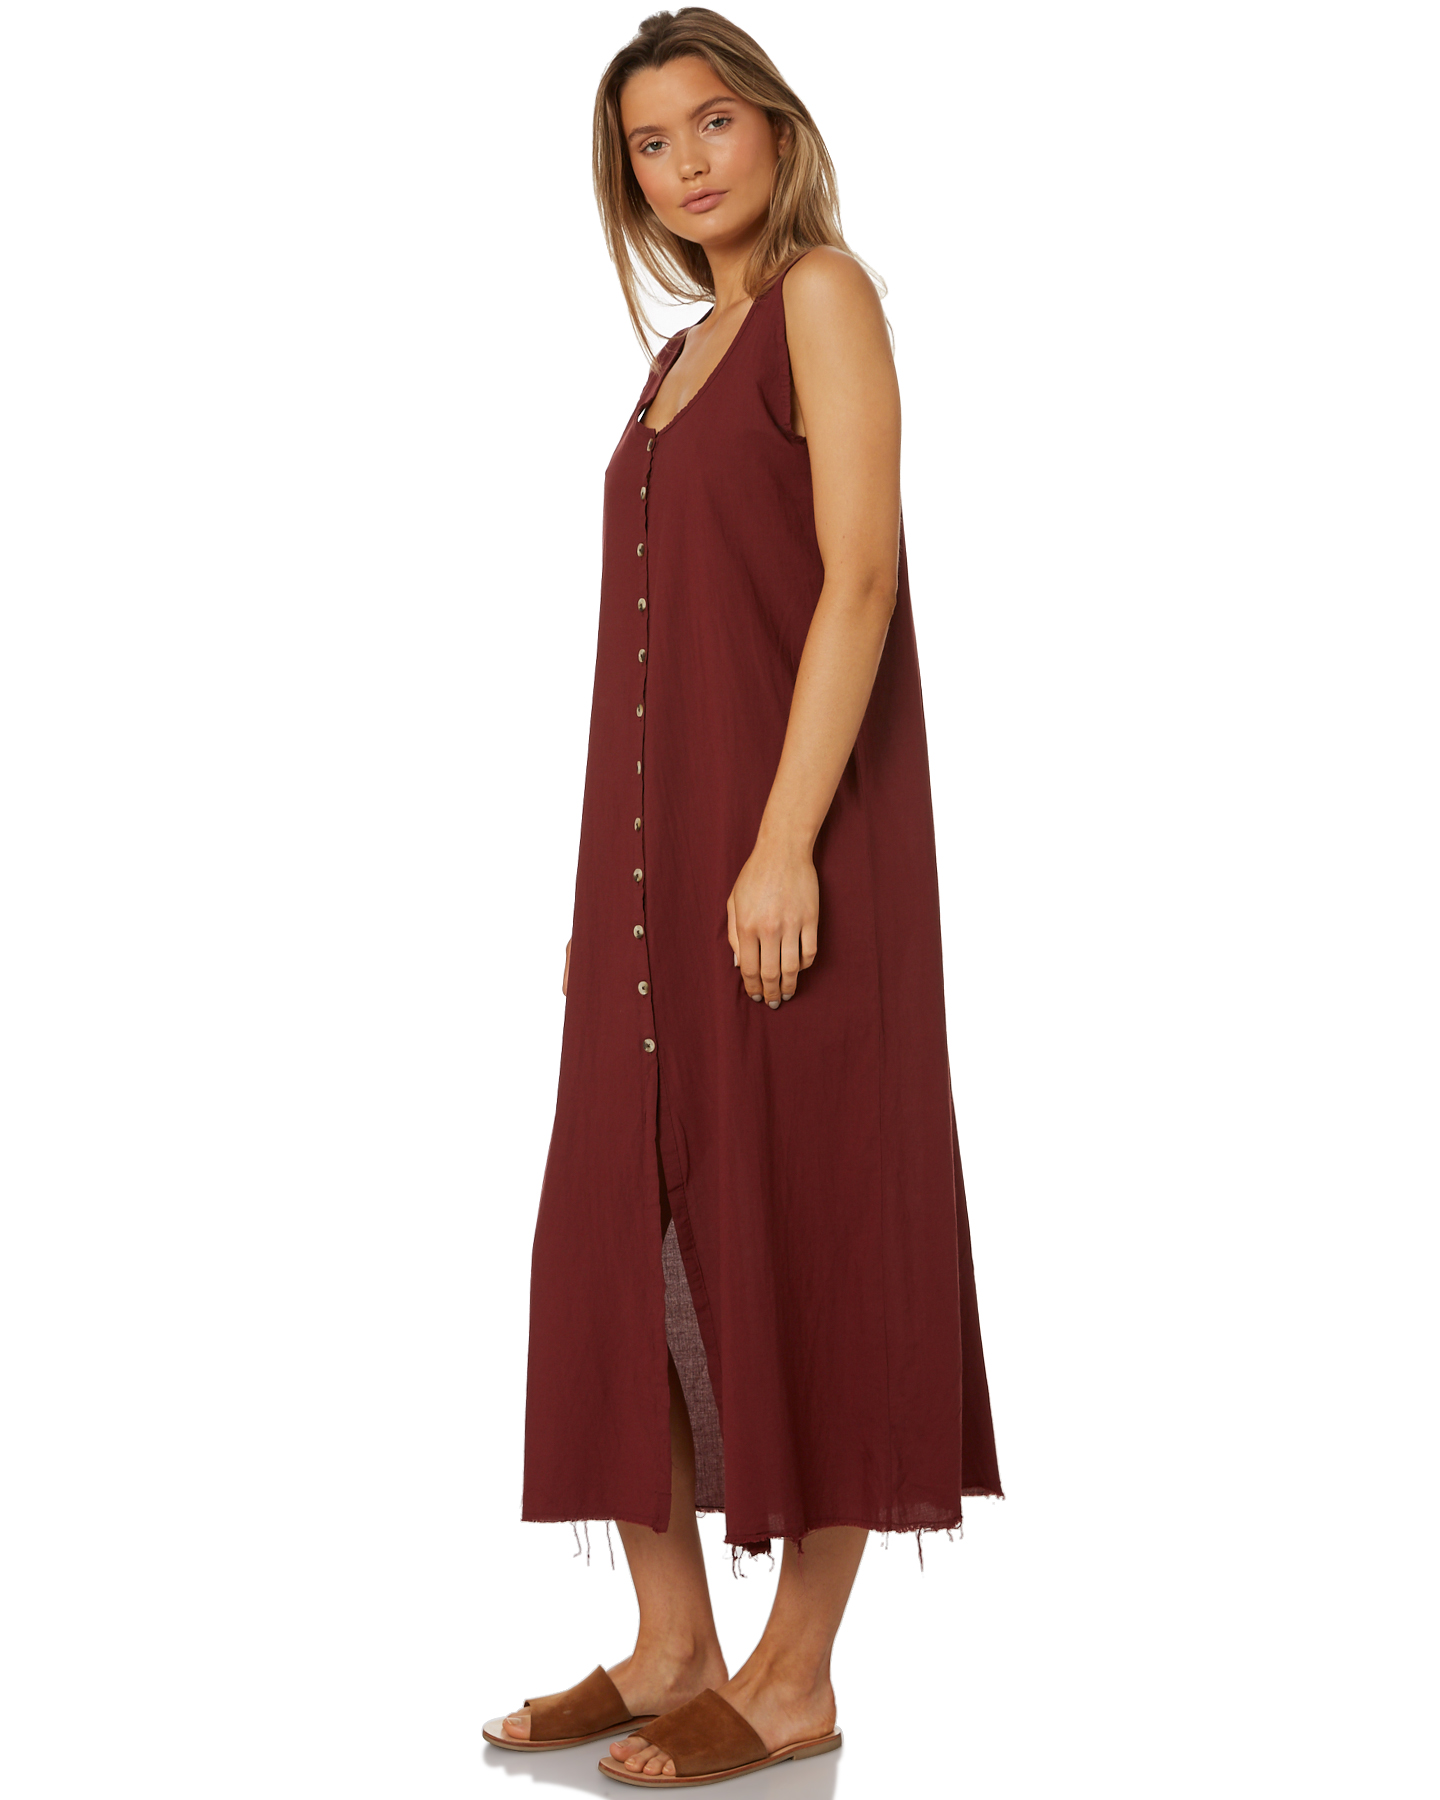 ac09b5cf4ec0 New Thrills Women's Laurel Maxi Dress Cotton Red 12 9351055137014 | eBay